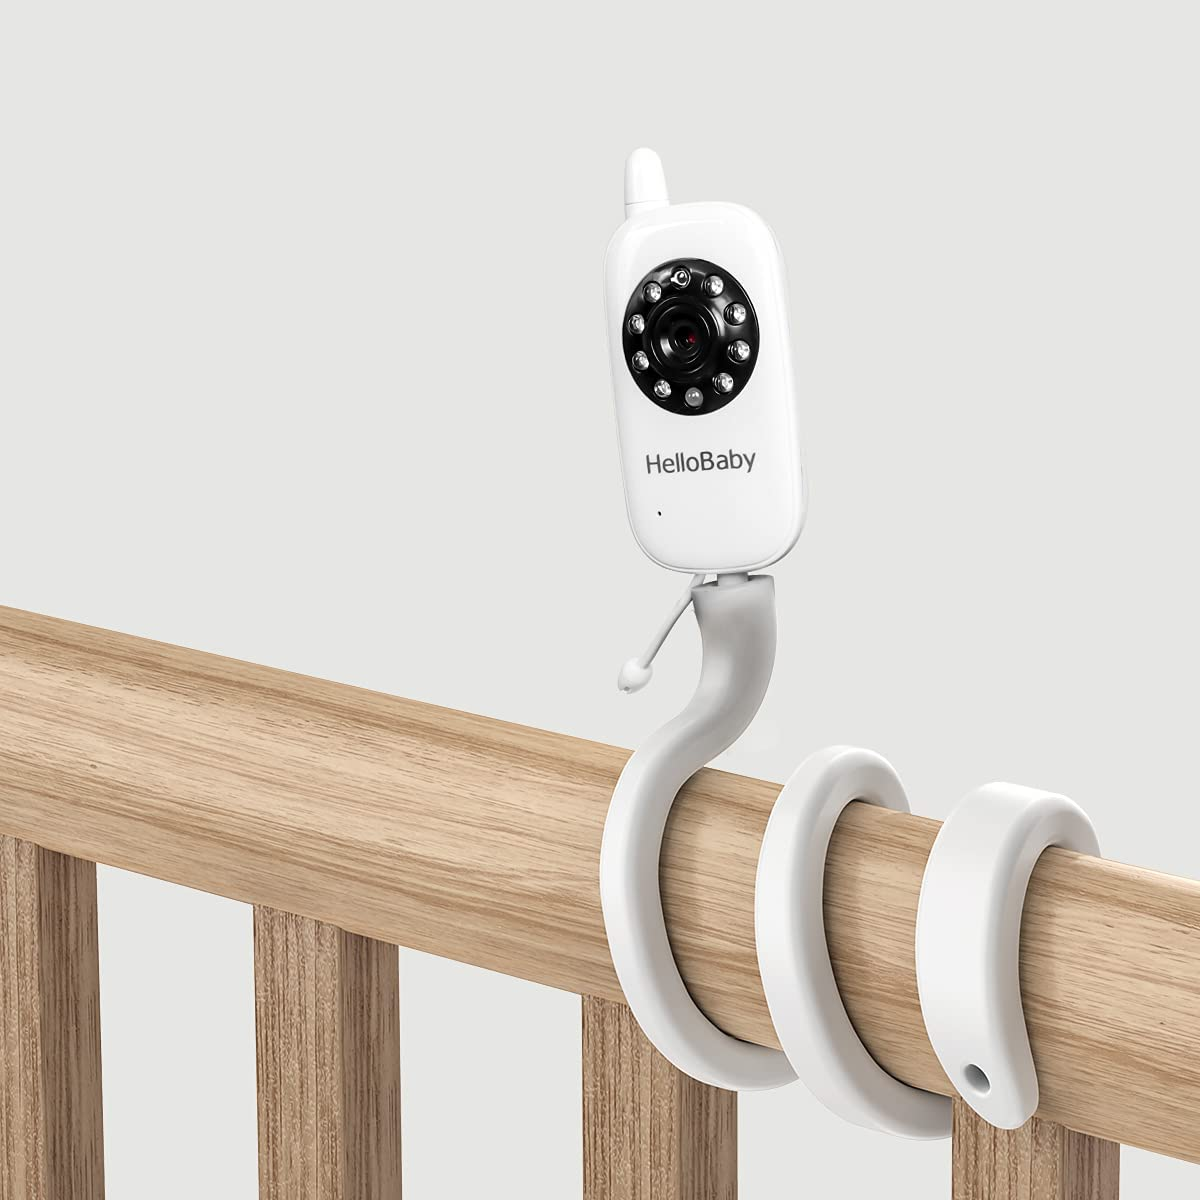 Baby Monitor Mount for Hellobaby Video Baby Monitor Adjustable Angle Wall Mount Compatitable with HelloBaby HB24 and HB32